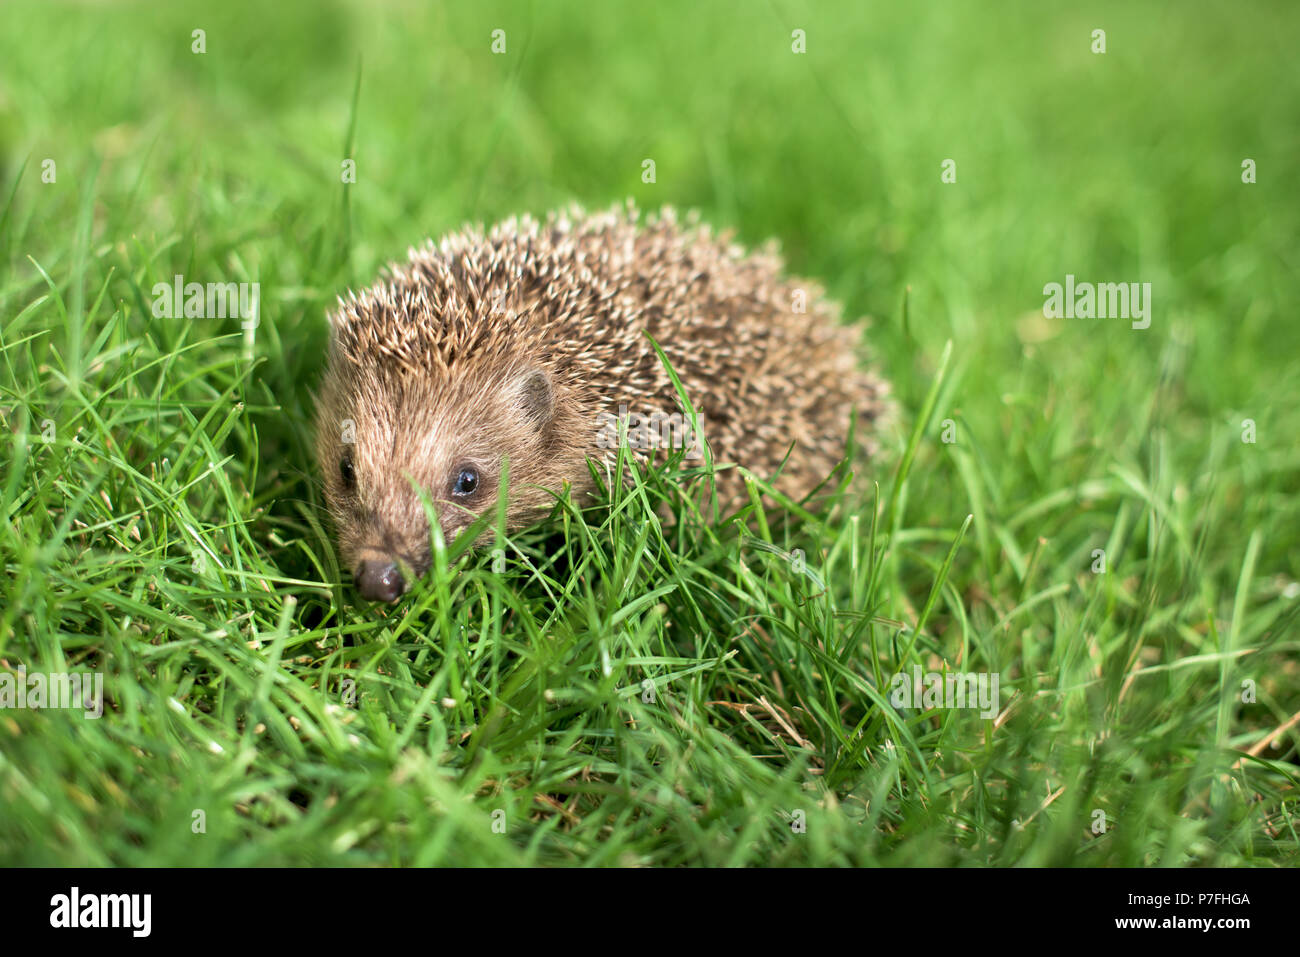 Small hedgehog in a garden, looking at camera - Stock Image